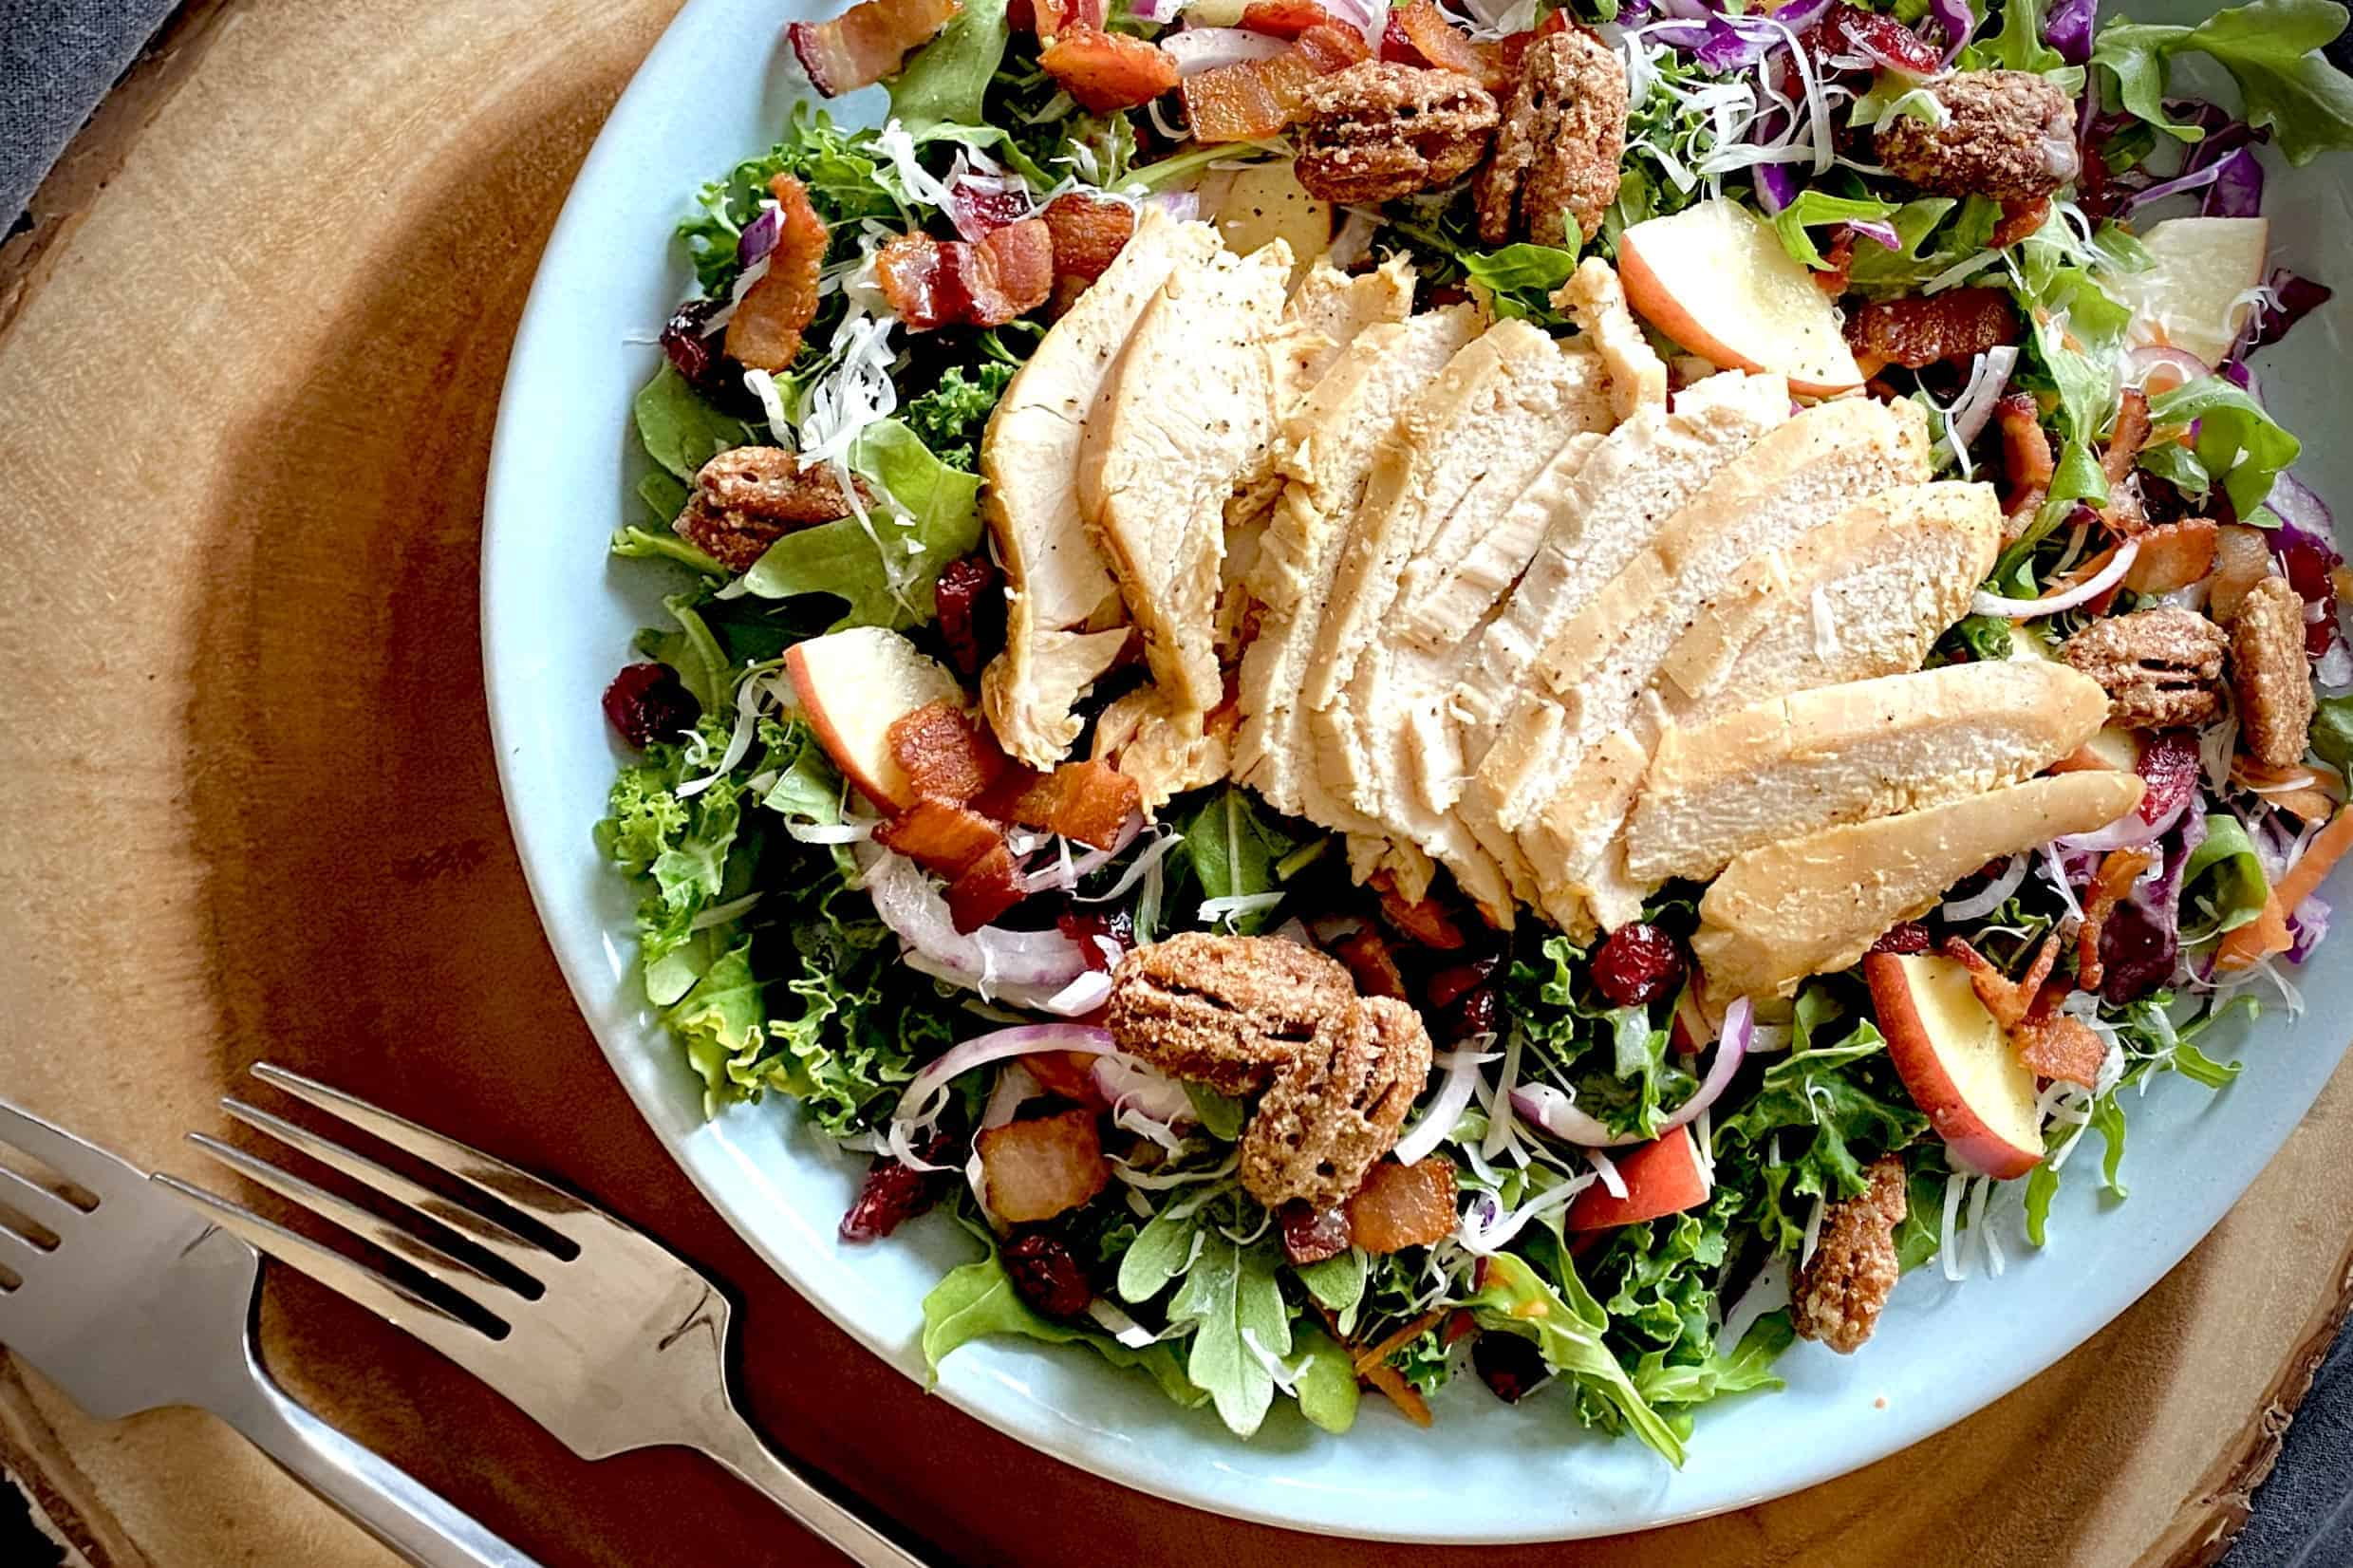 Kale Apple and Chicken Salad